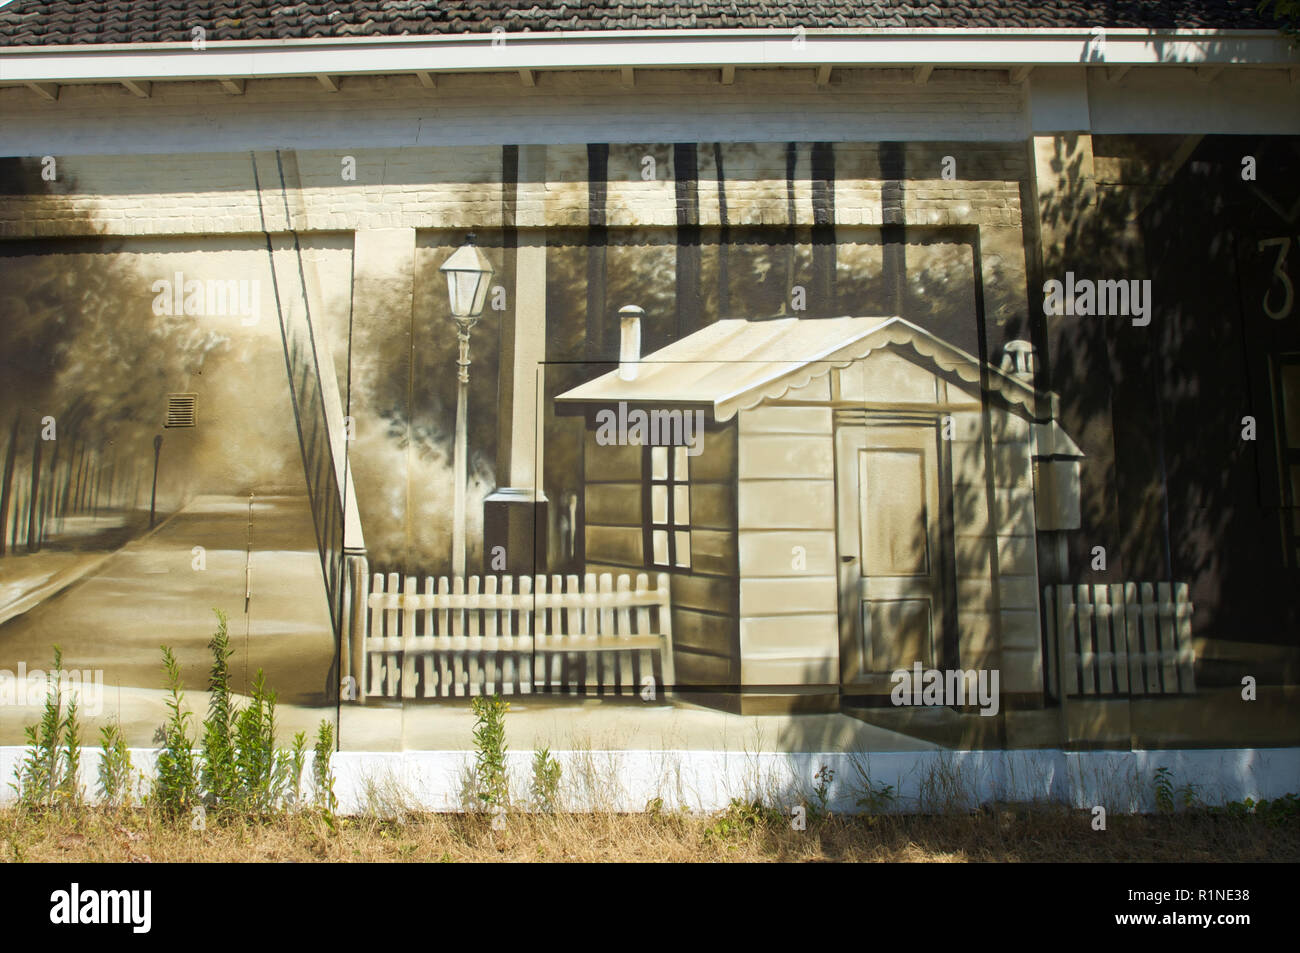 Wall painting on a house of the old railway station at the current train station in Baarn, the Netherlands - Stock Image